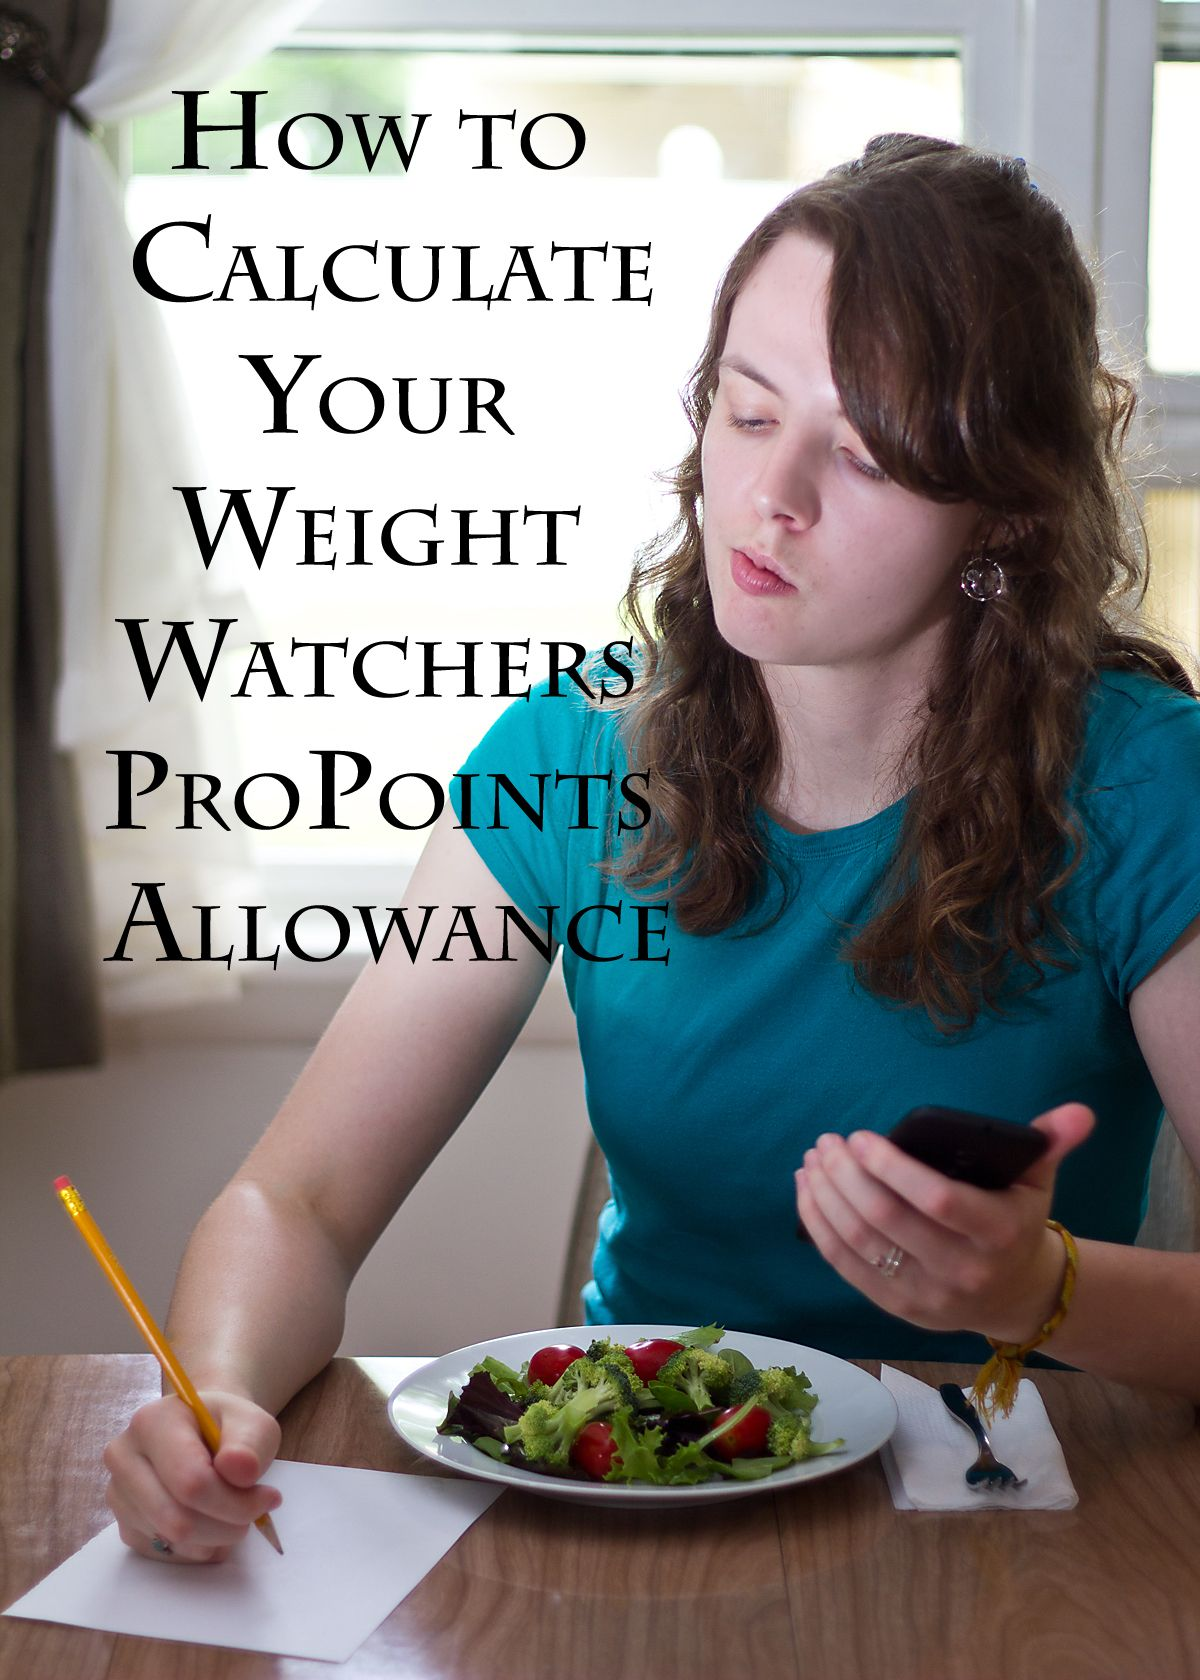 How many propoints am i allowed calculating ww points ww points how many propoints am i allowed calculating ww points forumfinder Choice Image